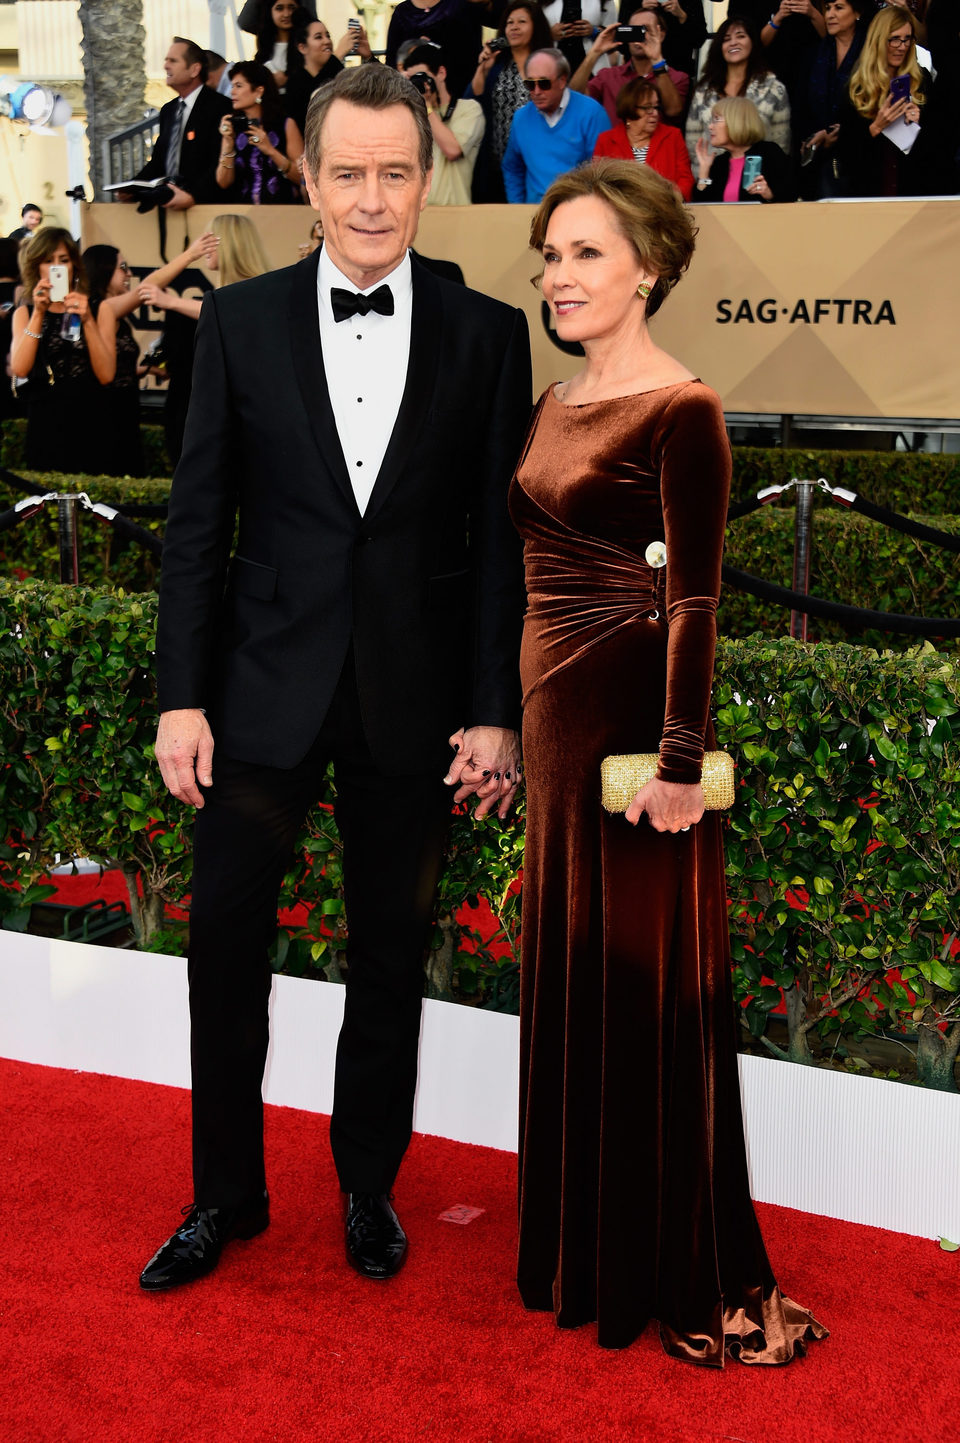 Bryan Cranston and Robin Dearden in red carpet of SAG Awards 2016